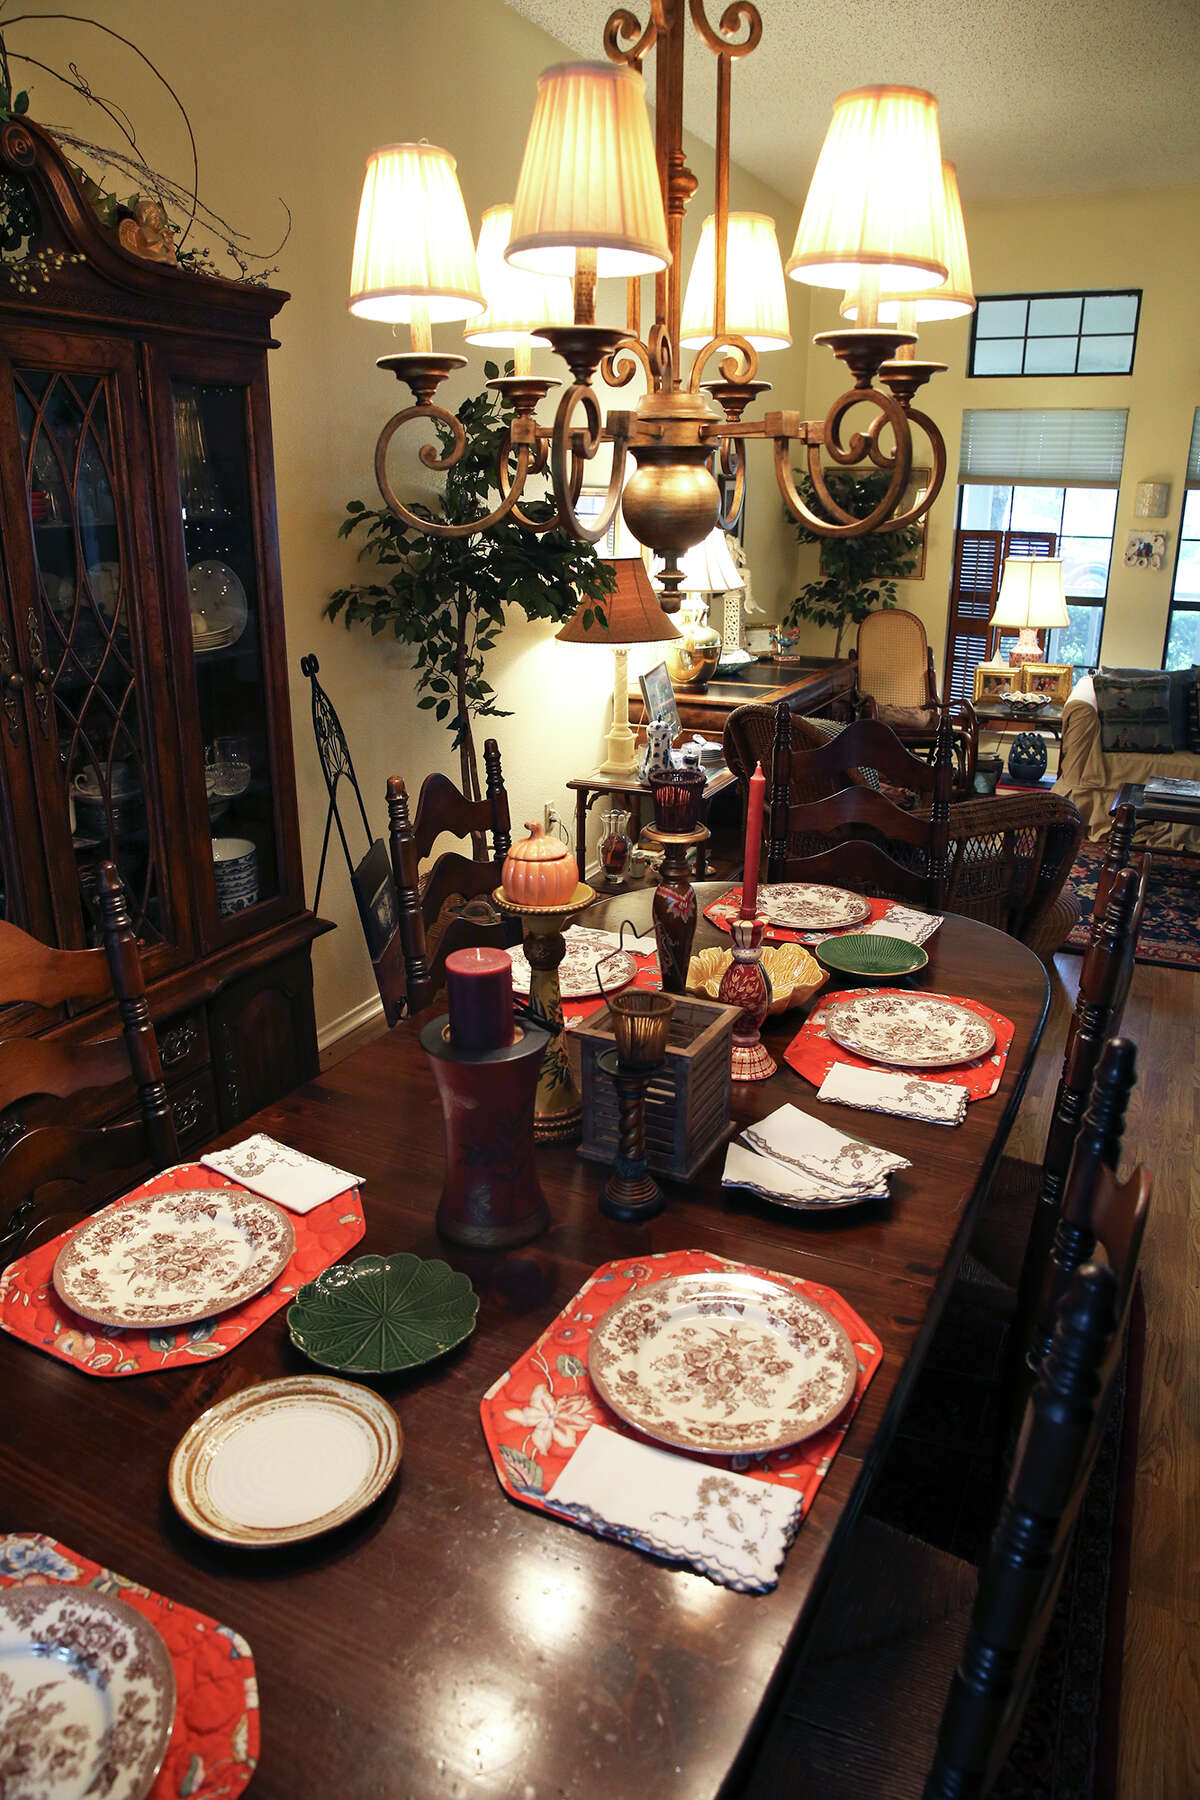 Formal dining room at home of Mary Hays on October 21, 2015.